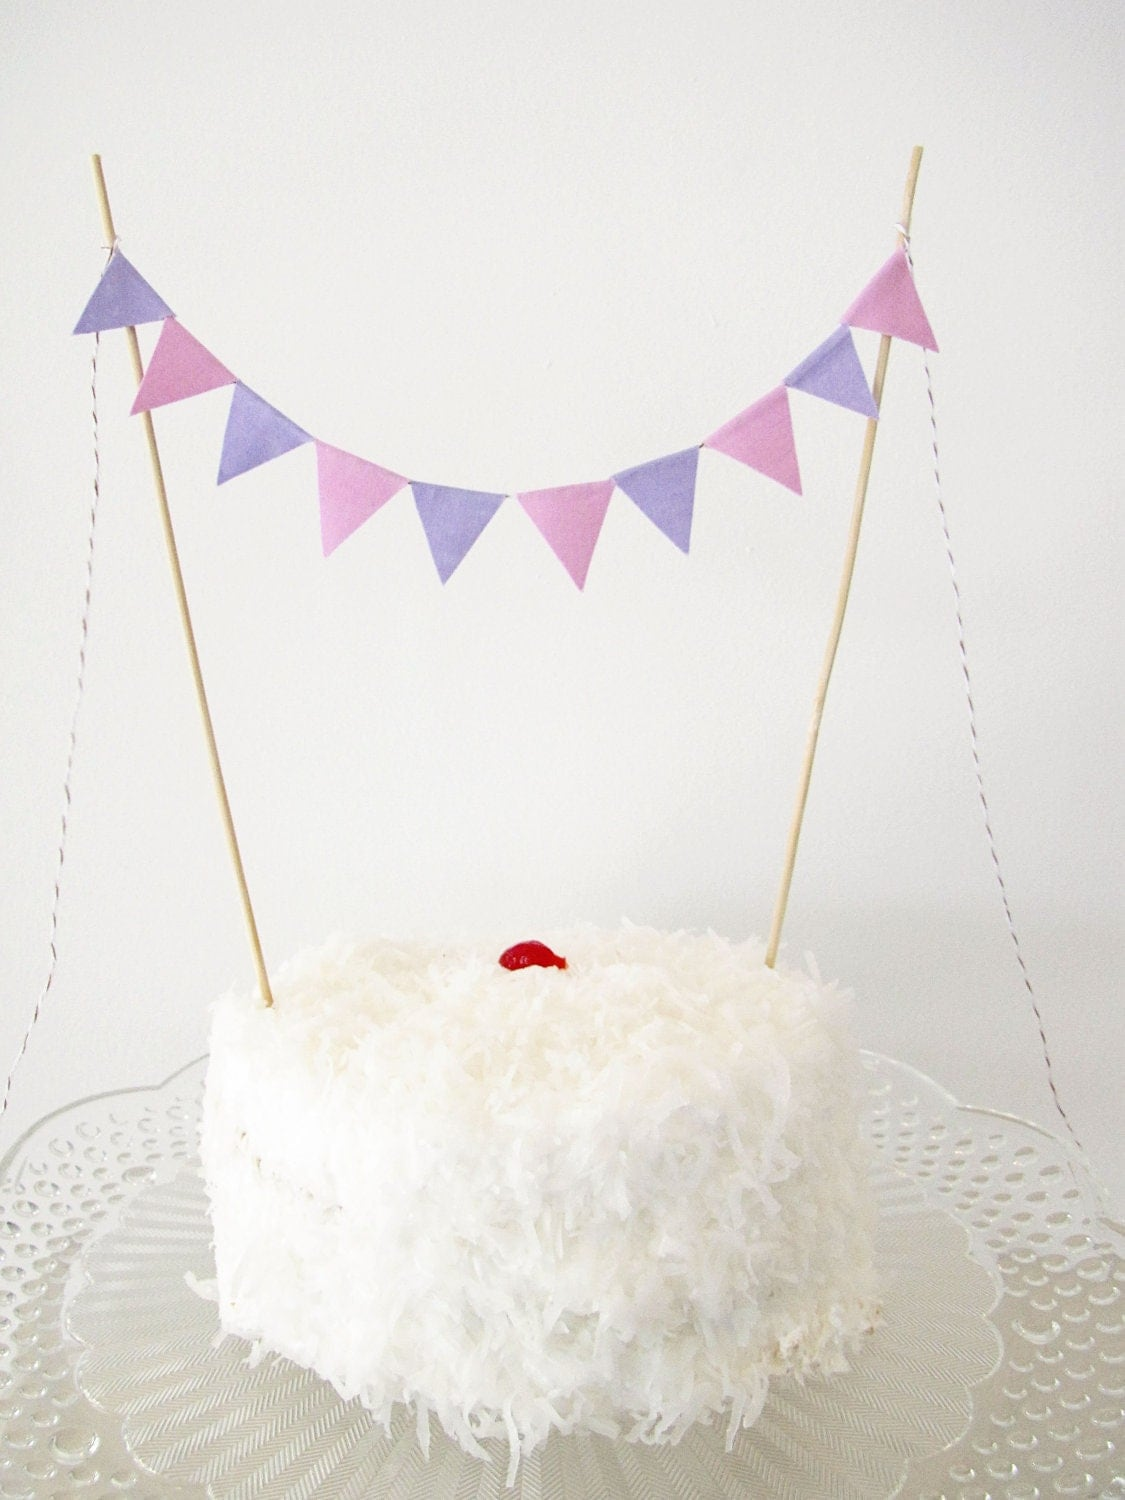 Fabric Cake Bunting Decoration - Cake Topper - Wedding, Birthday Party, Shower Decor in orchid and lilac